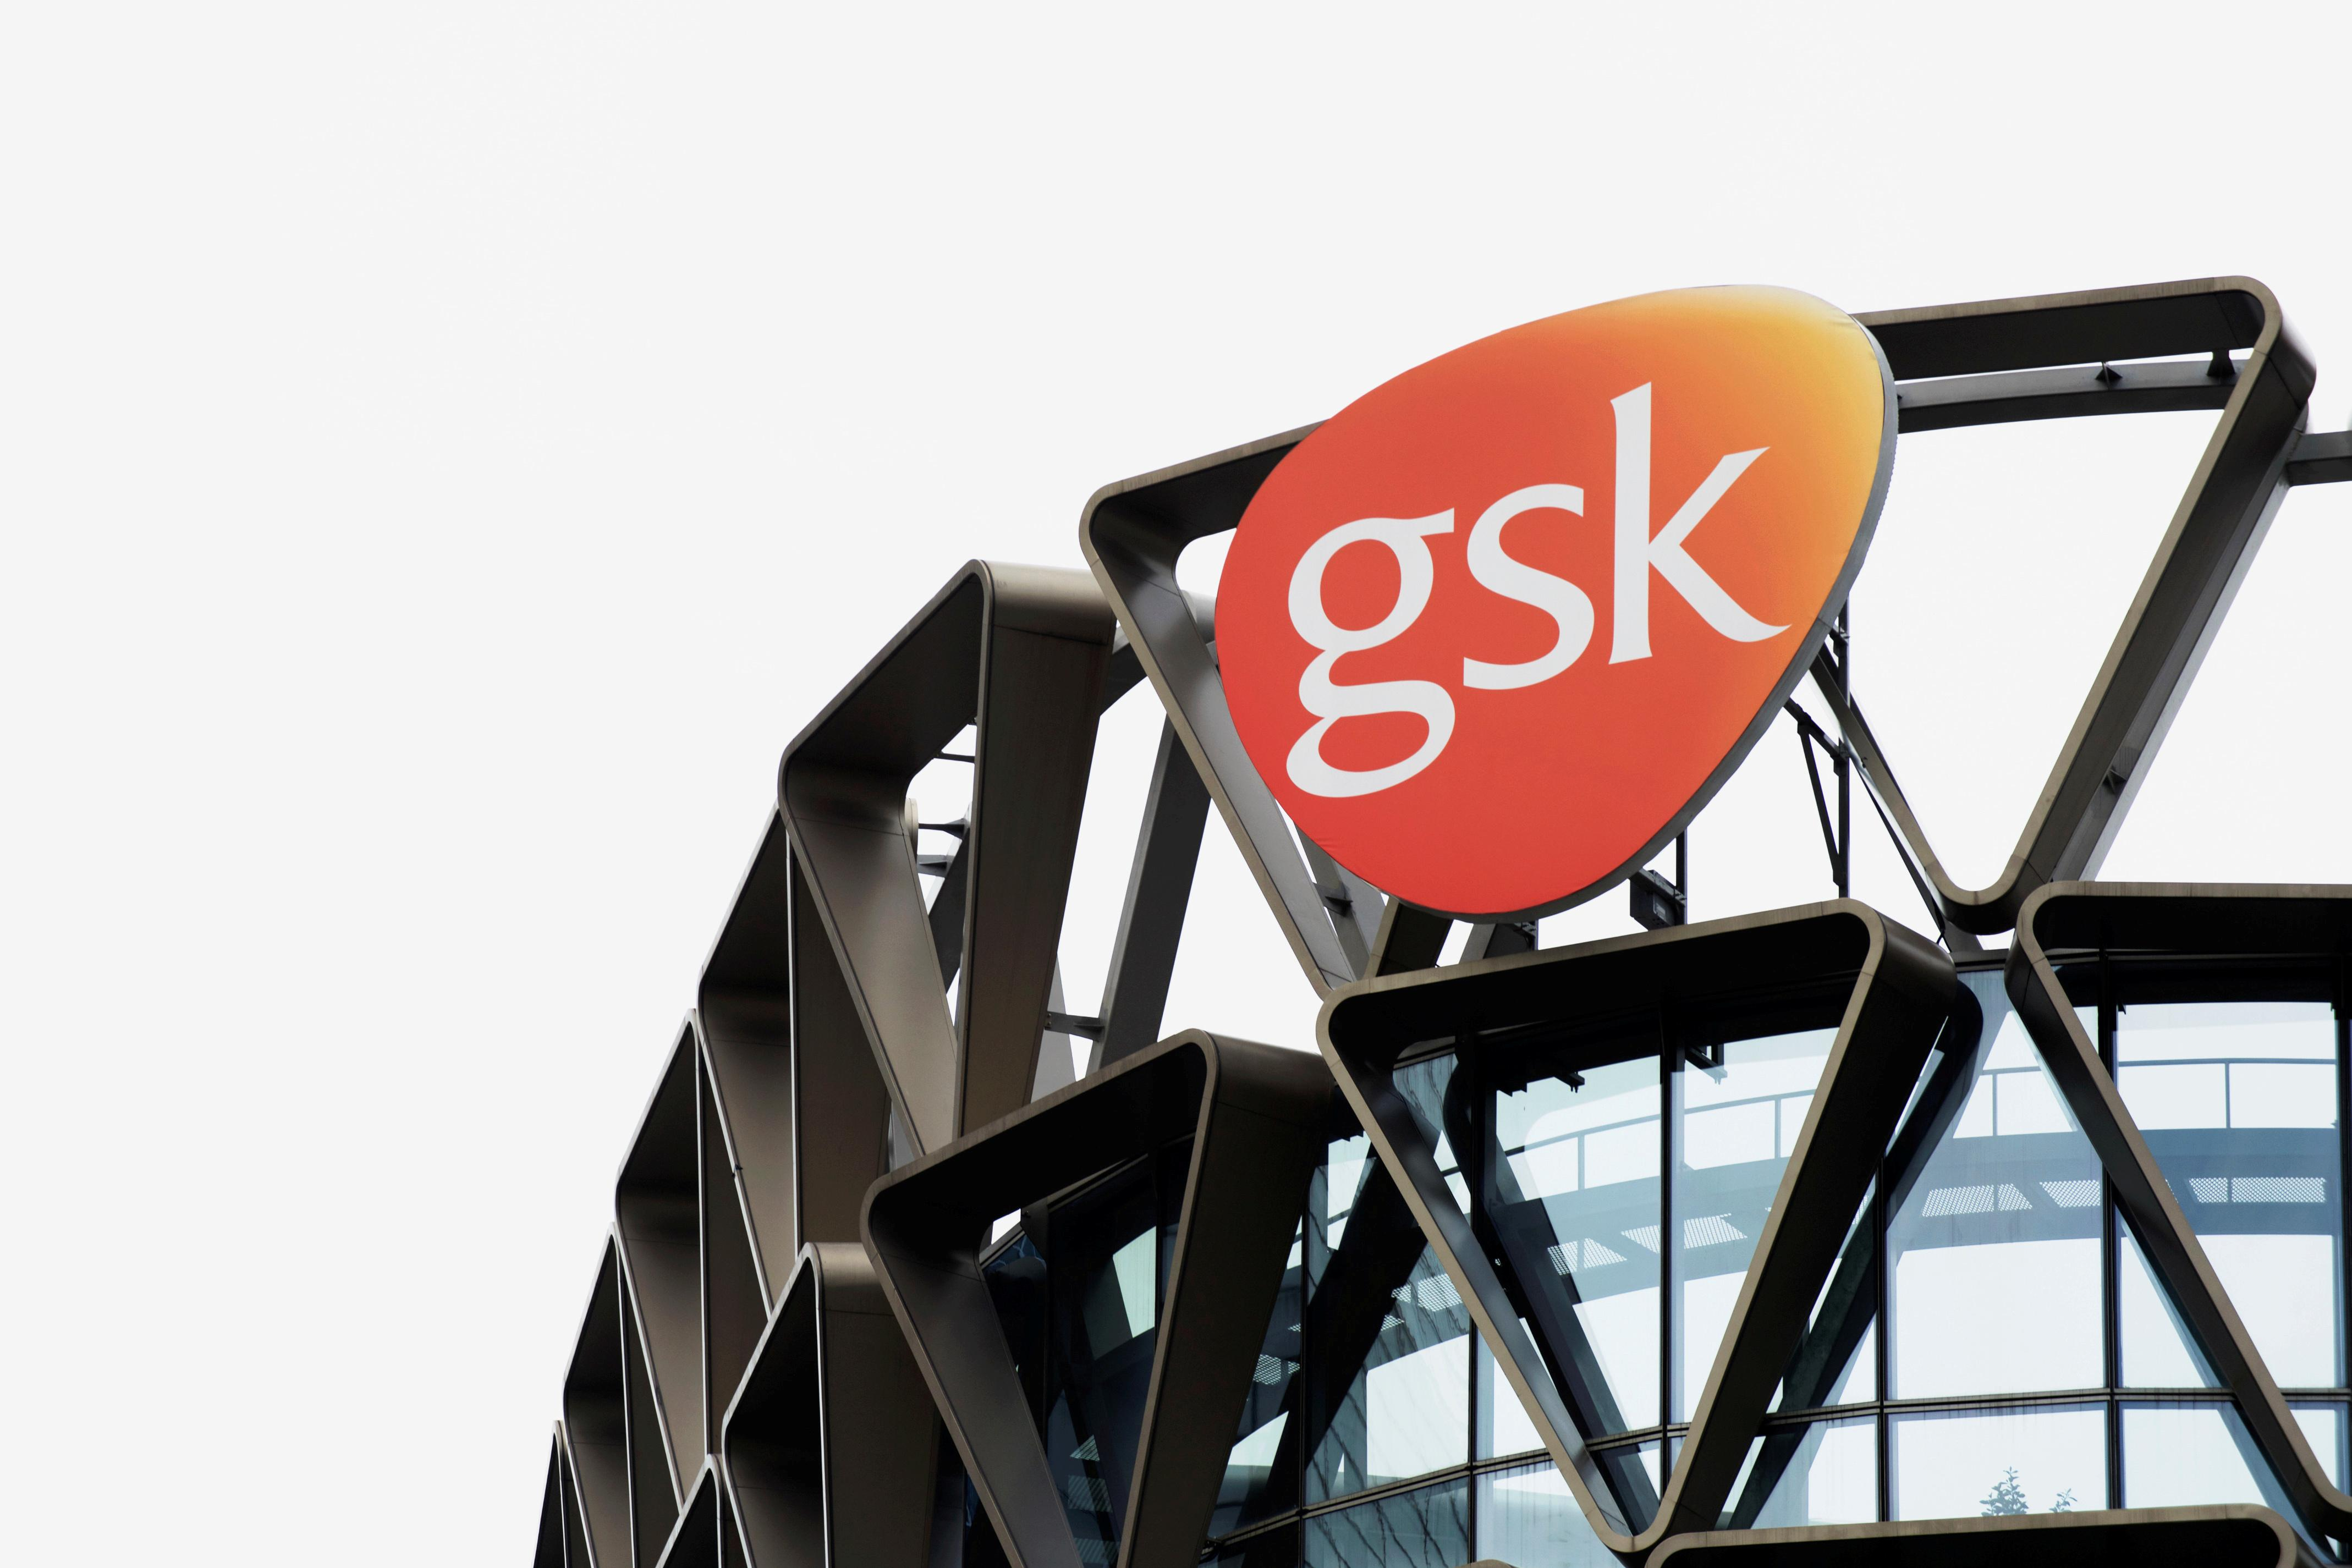 GSK builds oncology pipeline as drug shown to help myeloma patients